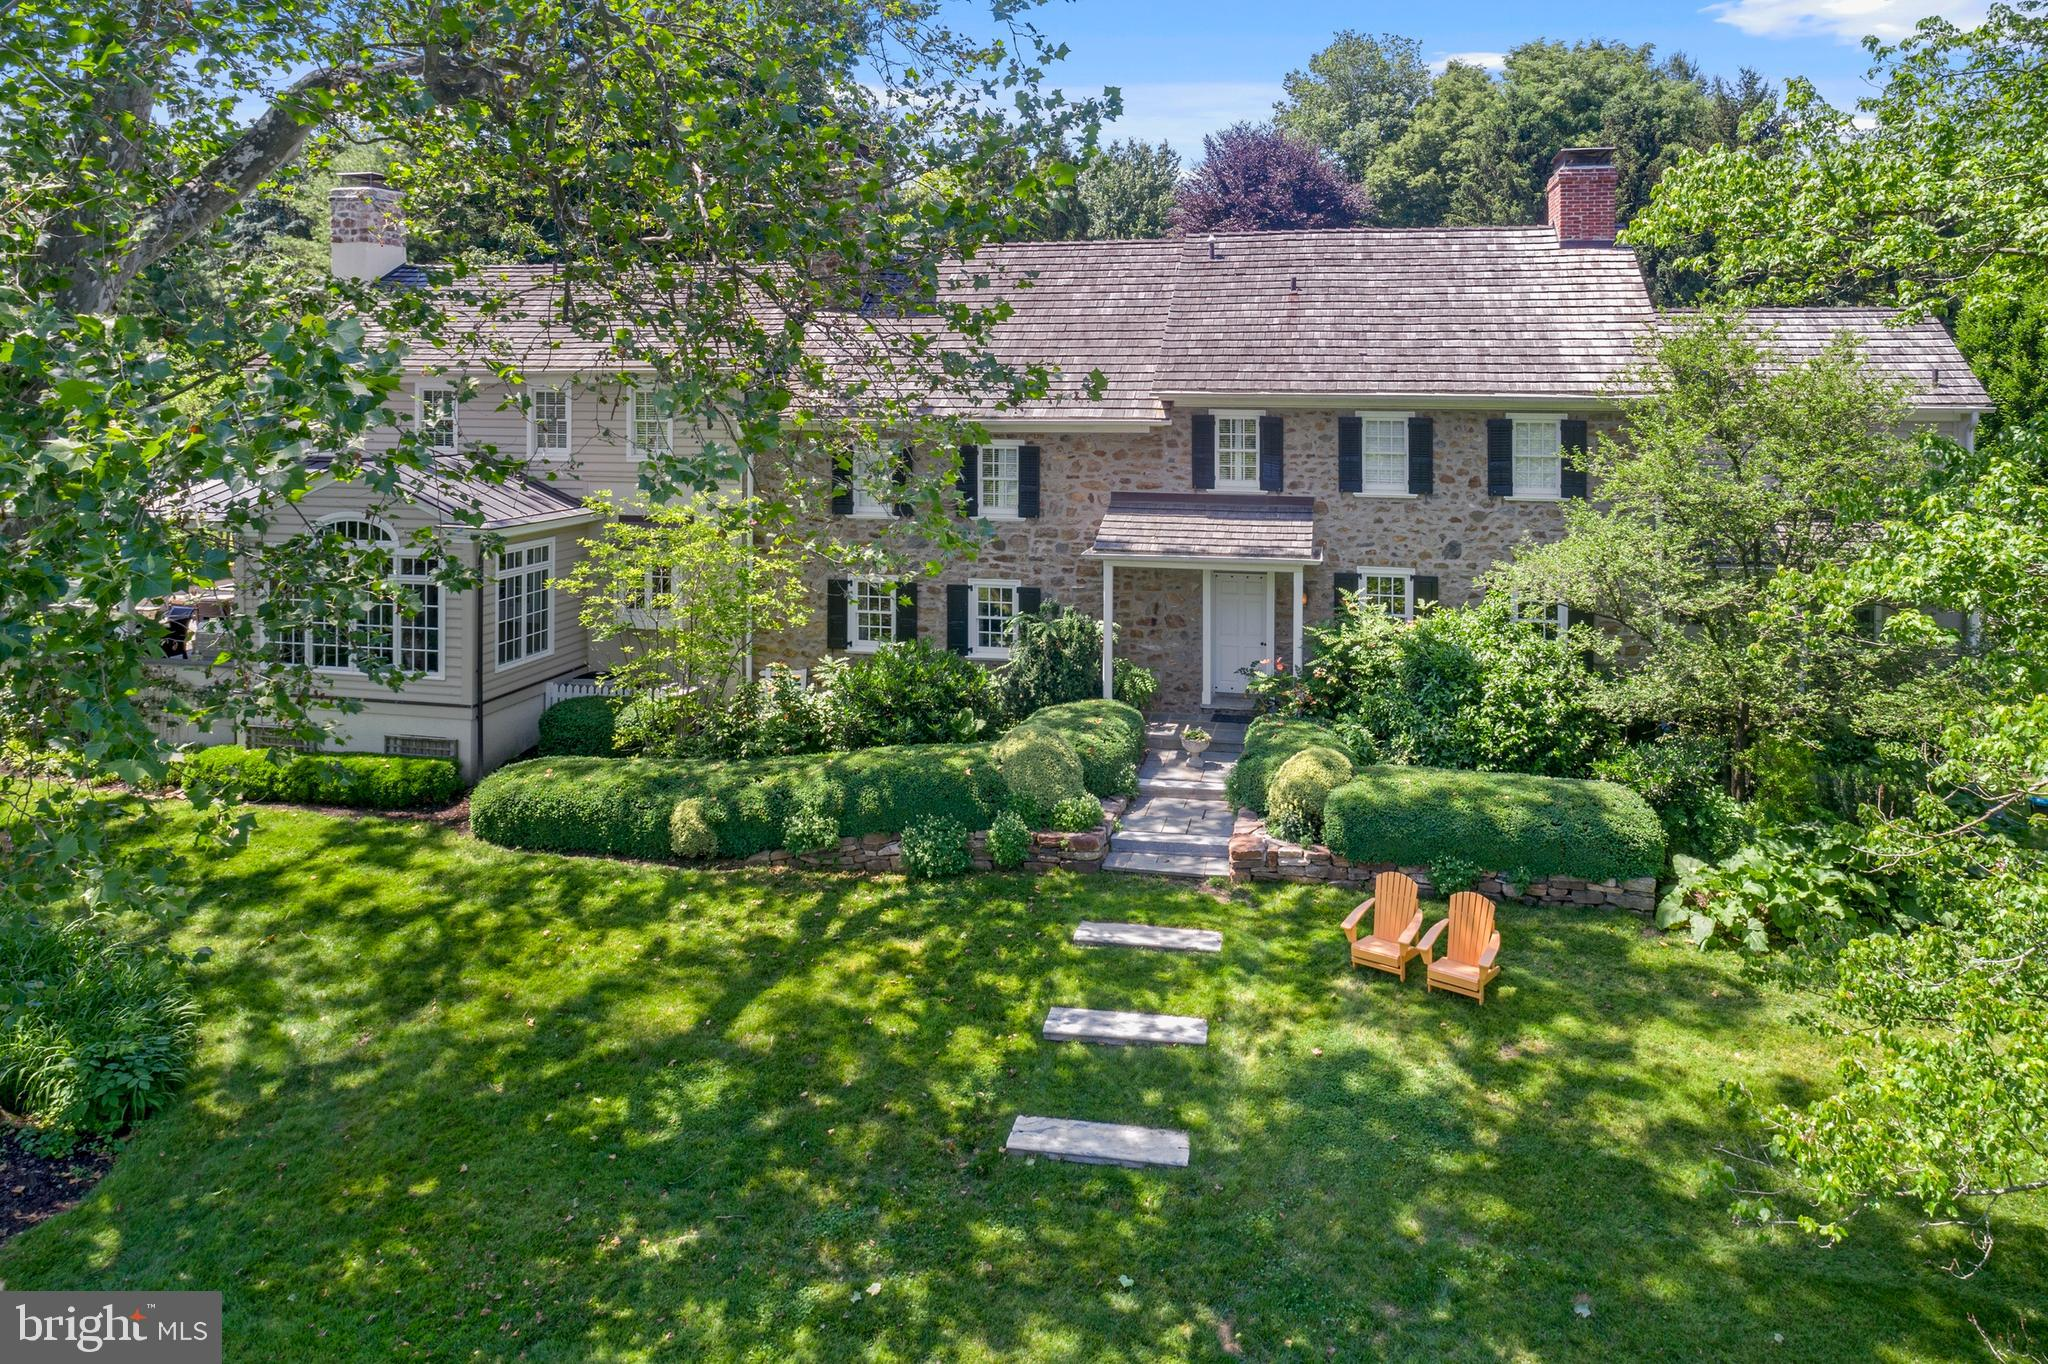 Don't miss this stunning property in the sought-after Brooke Farm neighborhood in Wayne. This restored and expanded 4-5 BD stone colonial offers a rare combination of historic charm combined with today's amenities, including an open concept Kitchen/Family Room and an attached, oversized, 3-car Garage. A unique feature is the fabulous Barn, which offers two levels of beautifully finished space with vaulted ceilings, exposed beams, a full bathroom, and wet bar/kitchenette. Currently used as a Media/Entertainment Room downstairs, and a Music Studio upstairs, this renovated historic structure has potential for use as an office, in-law / guest suite, art studio, or fitness studio… perfect for today's pandemic-influenced lifestyles. Nestled on a spectacular, beautifully landscaped 1.25+ acre property, this home is adjacent to acres of natural open space which offers supreme privacy. The sparkling pool and spa has an outdoor shower and adjacent covered patio off the barn. Originally renovated and expanded by Chip Vaughan, this home has timeless design that incorporates vintage architectural details including exposed stone walls, original fireplaces, gleaming wood floors, and extensive custom millwork. The modern floor plan includes a 1st floor Office, spacious Living Room, Dining Room with stunning original stone fireplace, and a gourmet Kitchen with open views of the large Family Room and Breakfast Room. You'll love relaxing and entertaining on multiple stone patios and gathering around the built-in firepit. Upstairs is a Master BD Suite with Master BA & walk-in closet, Laundry Room, (3) Hall BD, a large Bonus Room/5th BD and 2 more full BA. Downstairs is a finished Rec Room and a custom wine cellar. This home is centrally located in highly-ranked Radnor School District, just 5 minutes from train, shopping, and restaurants in the charming village of Wayne. Easy commuting distance to Center City, Airport, medical, and corporate centers. Showings by appt. only.